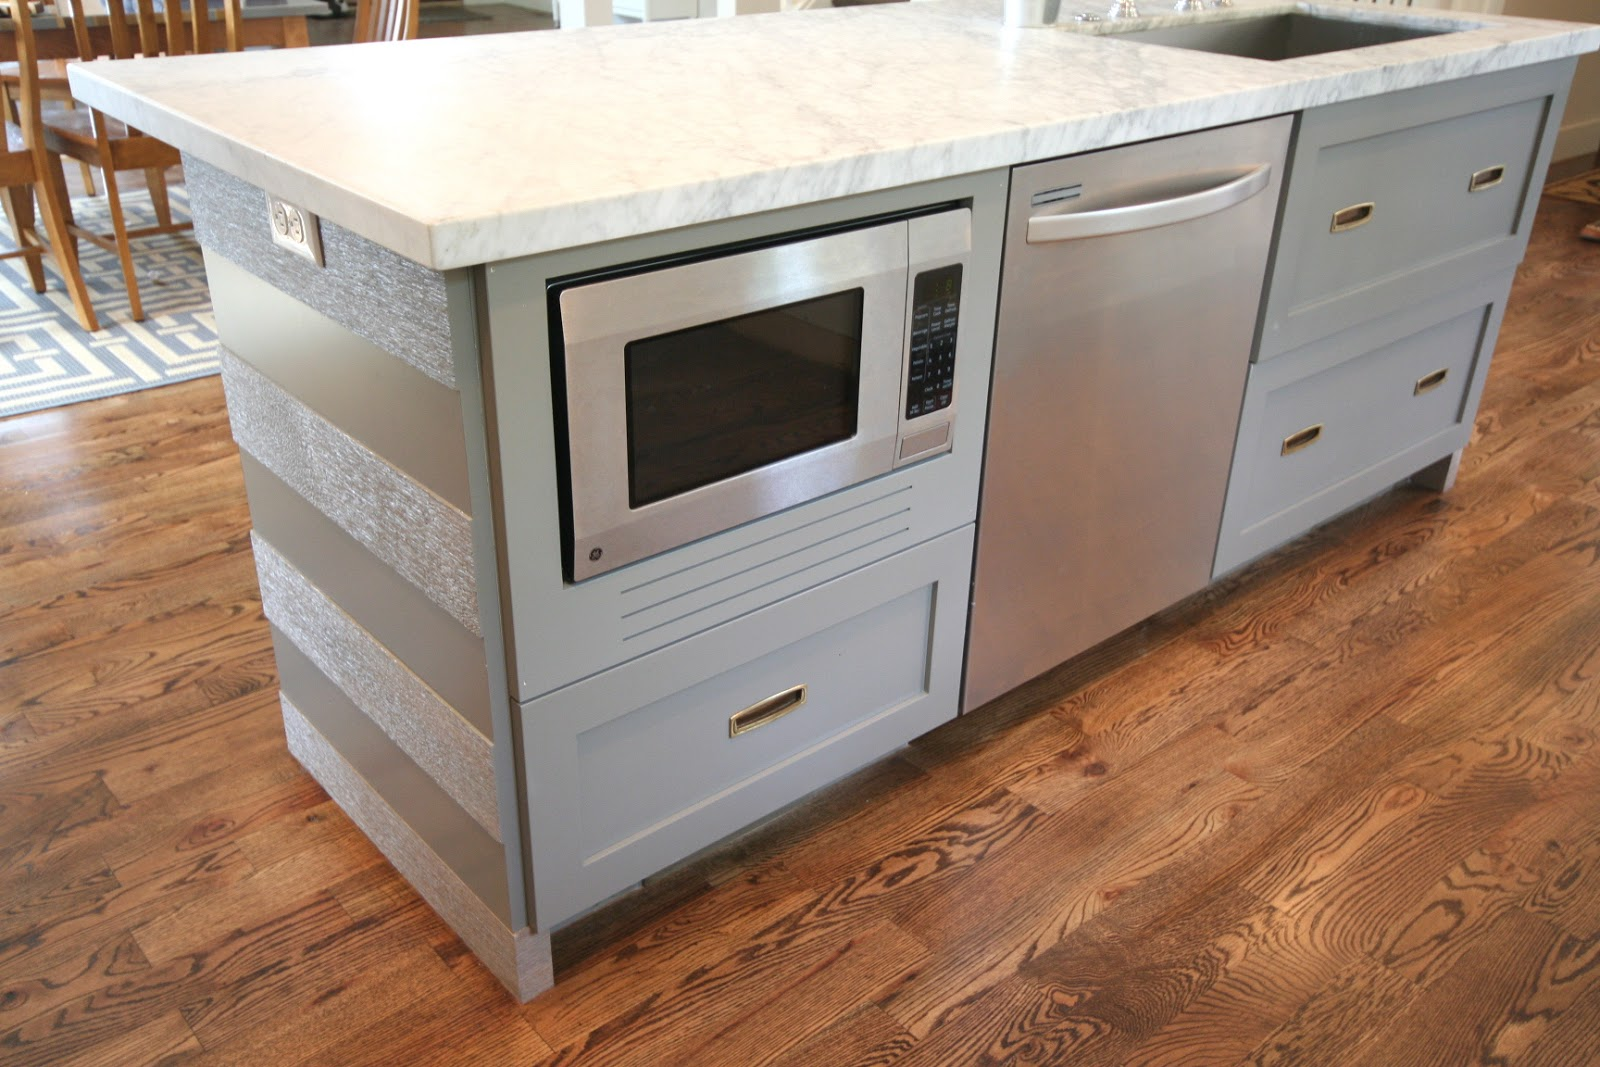 Countertop Microwave To Built In : this is a really affordable option to a built-in microwave with a ...